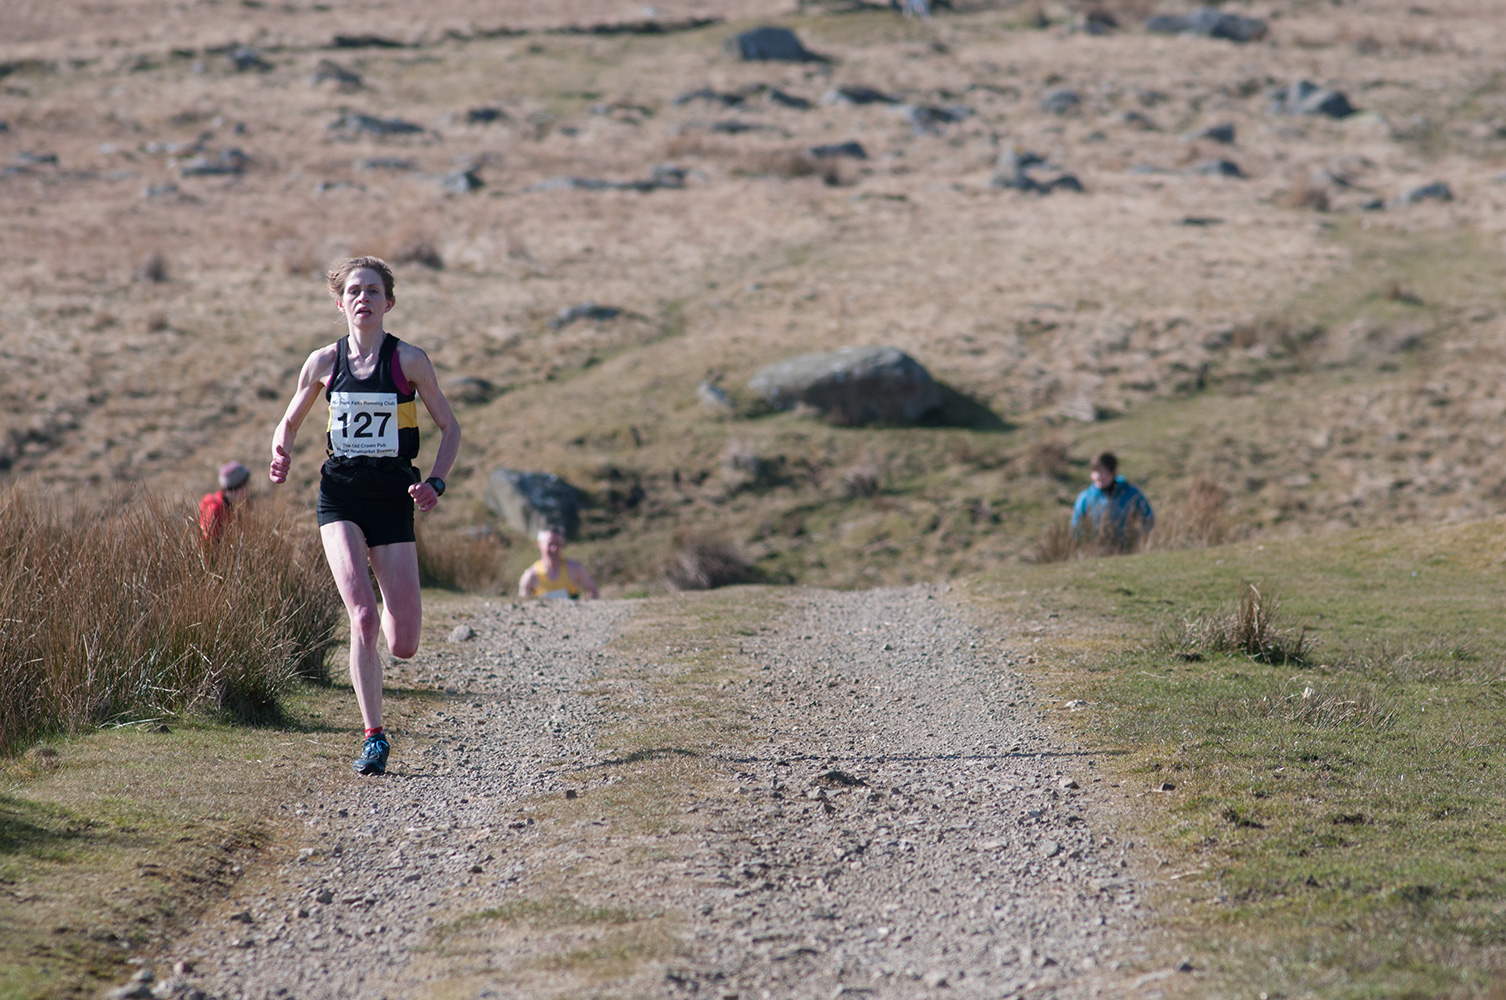 The inaugural Carrock Fell Race - a 9km race from Calebreck to the summit of Carrock and back over High Pike - was run on 20th March 2016.The womens' race was won by Heidi Dent, who was only six or so minutes behind Ricky Lightfoot. Here she approaches the finish.